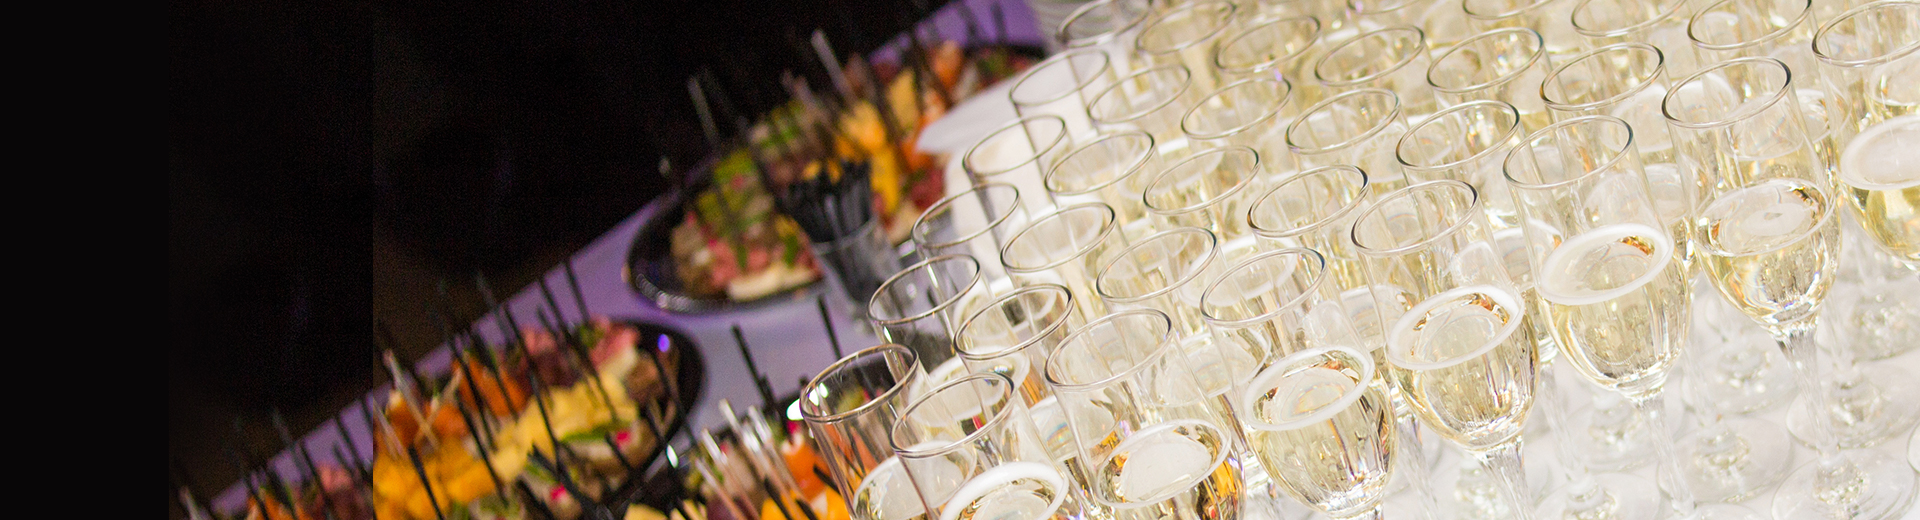 Event Catering Wine Supplier